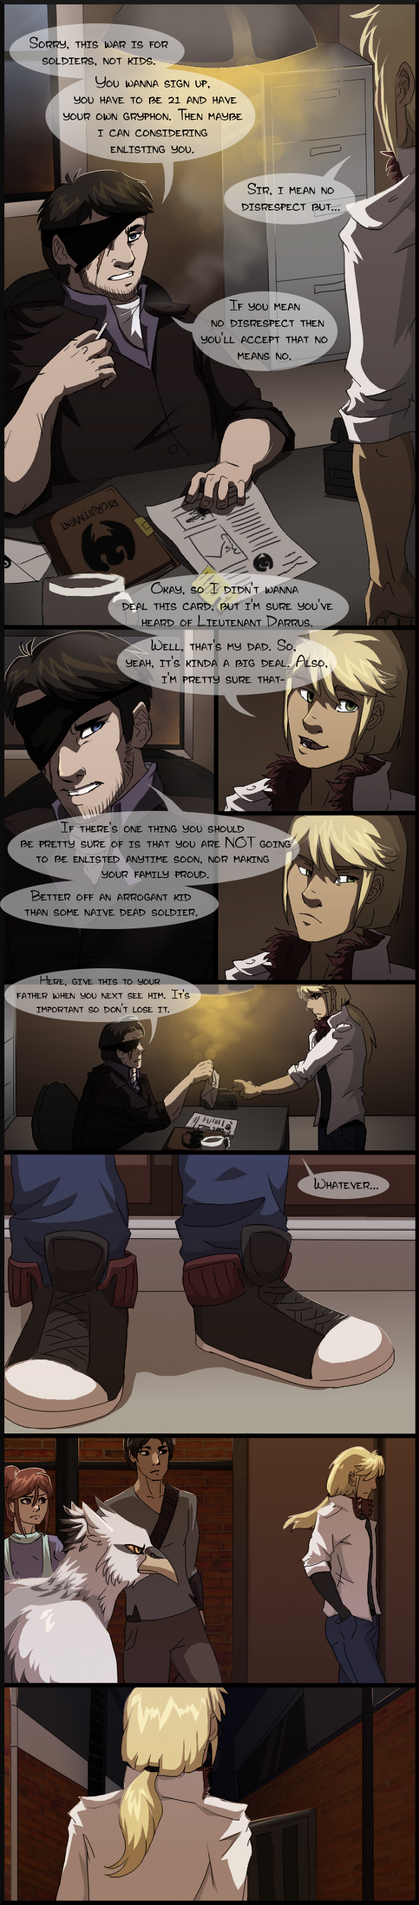 WCOCT: Audition page 1 by Zolarise